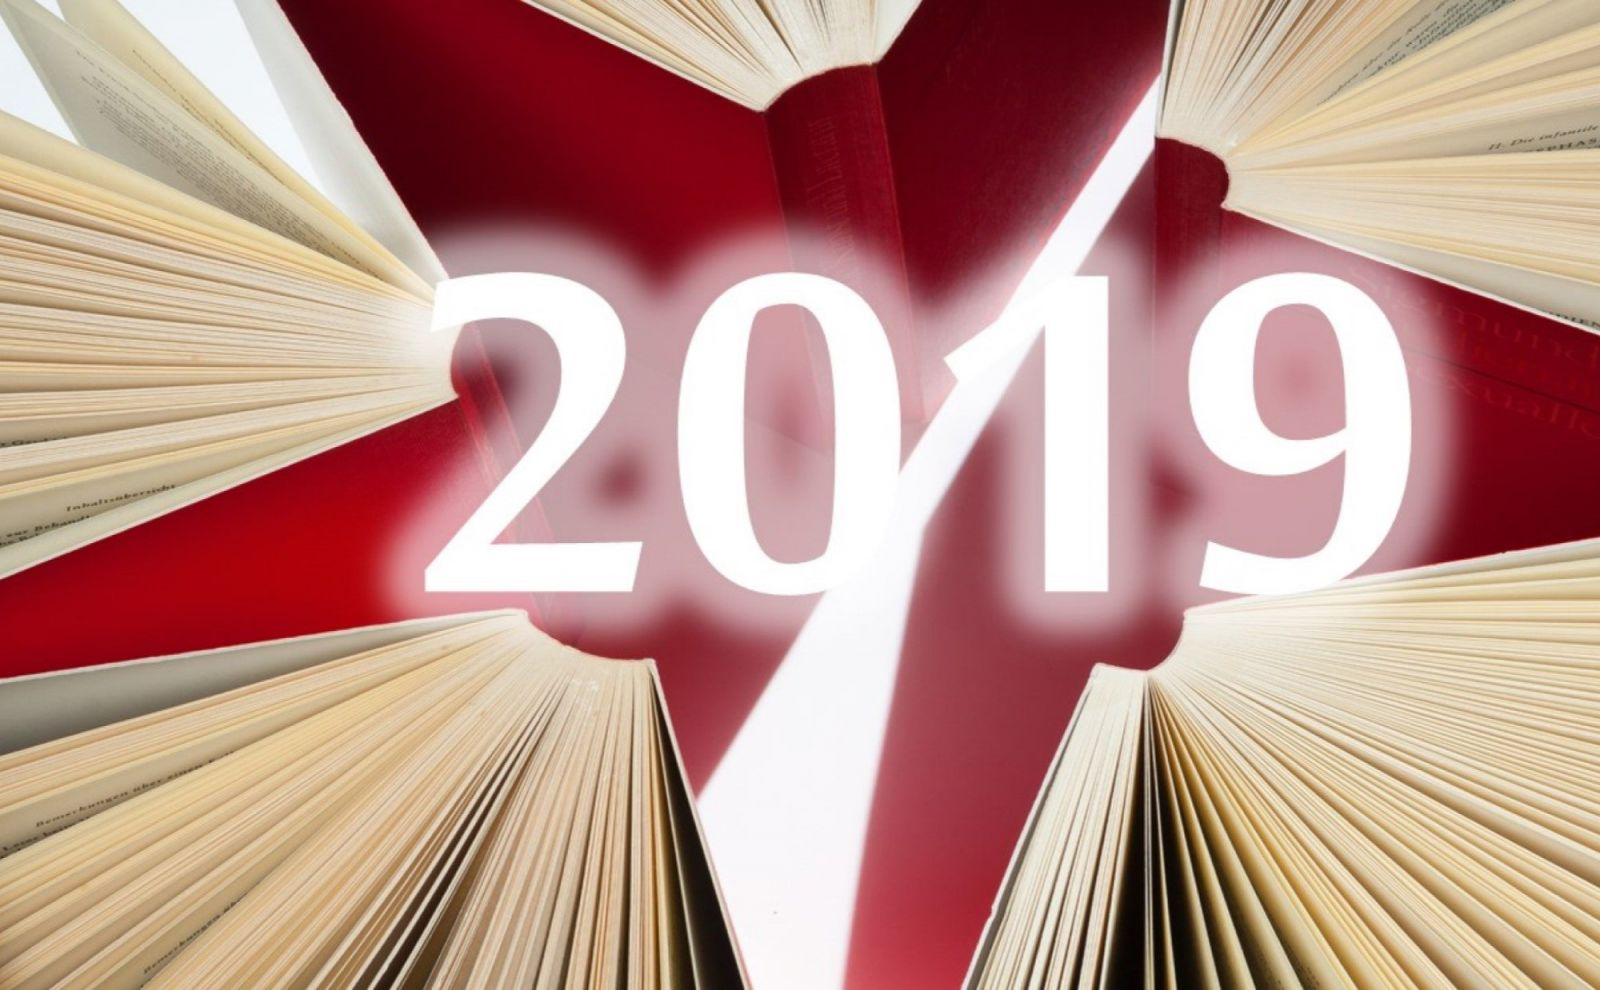 The best books of 2019 according to the editors of the Last Tavern